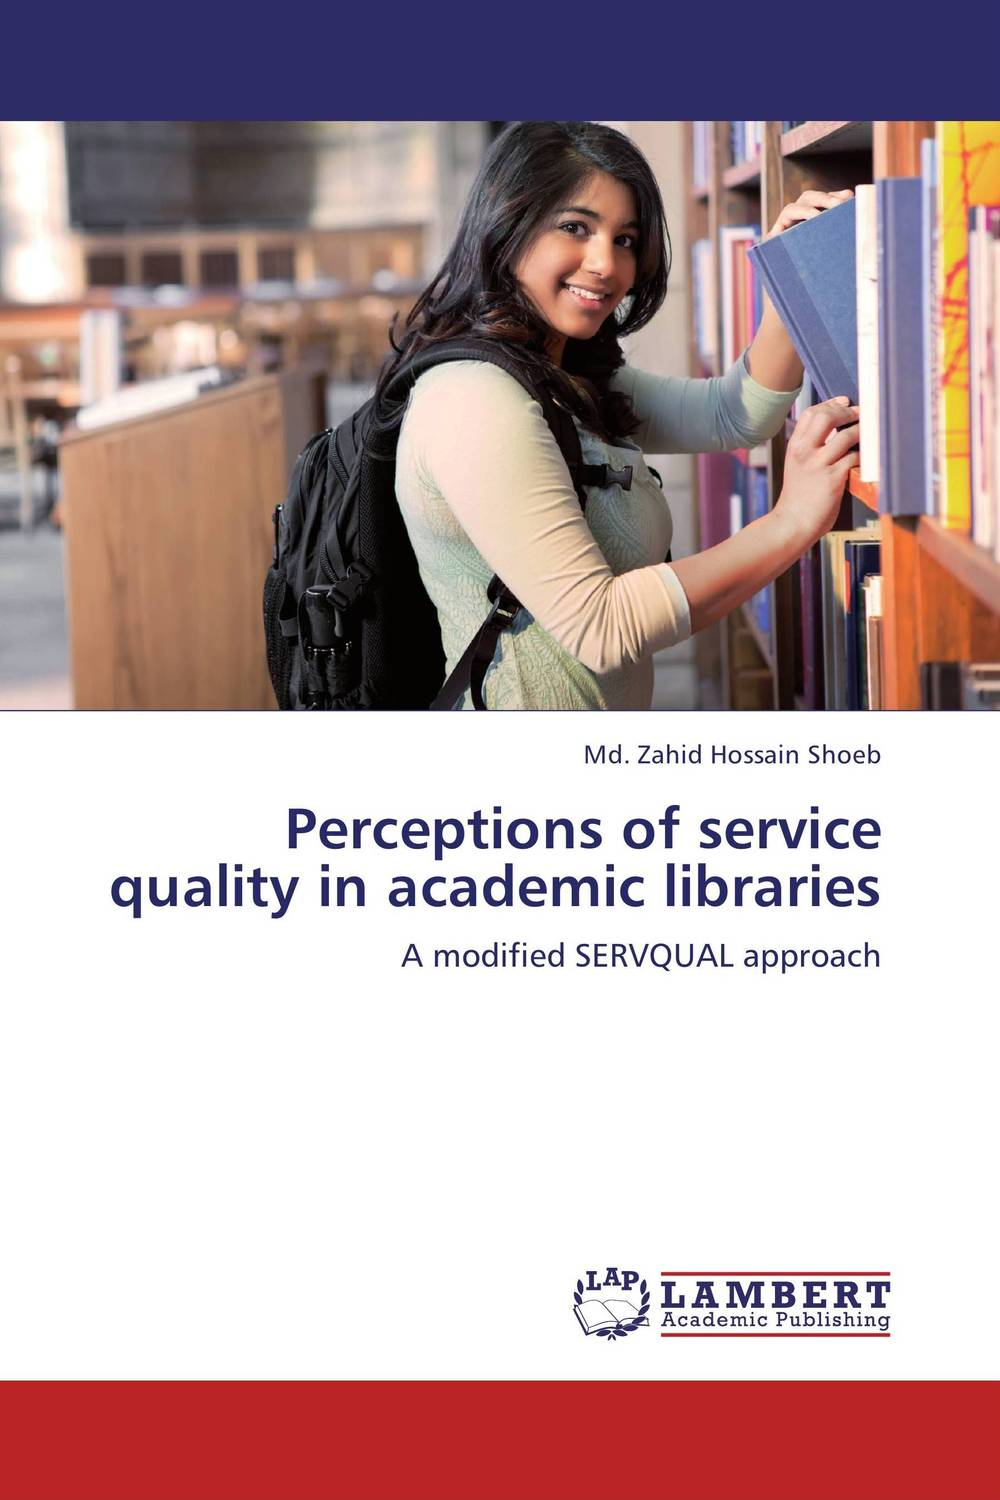 Perceptions of service quality in academic libraries peter block stewardship choosing service over self interest